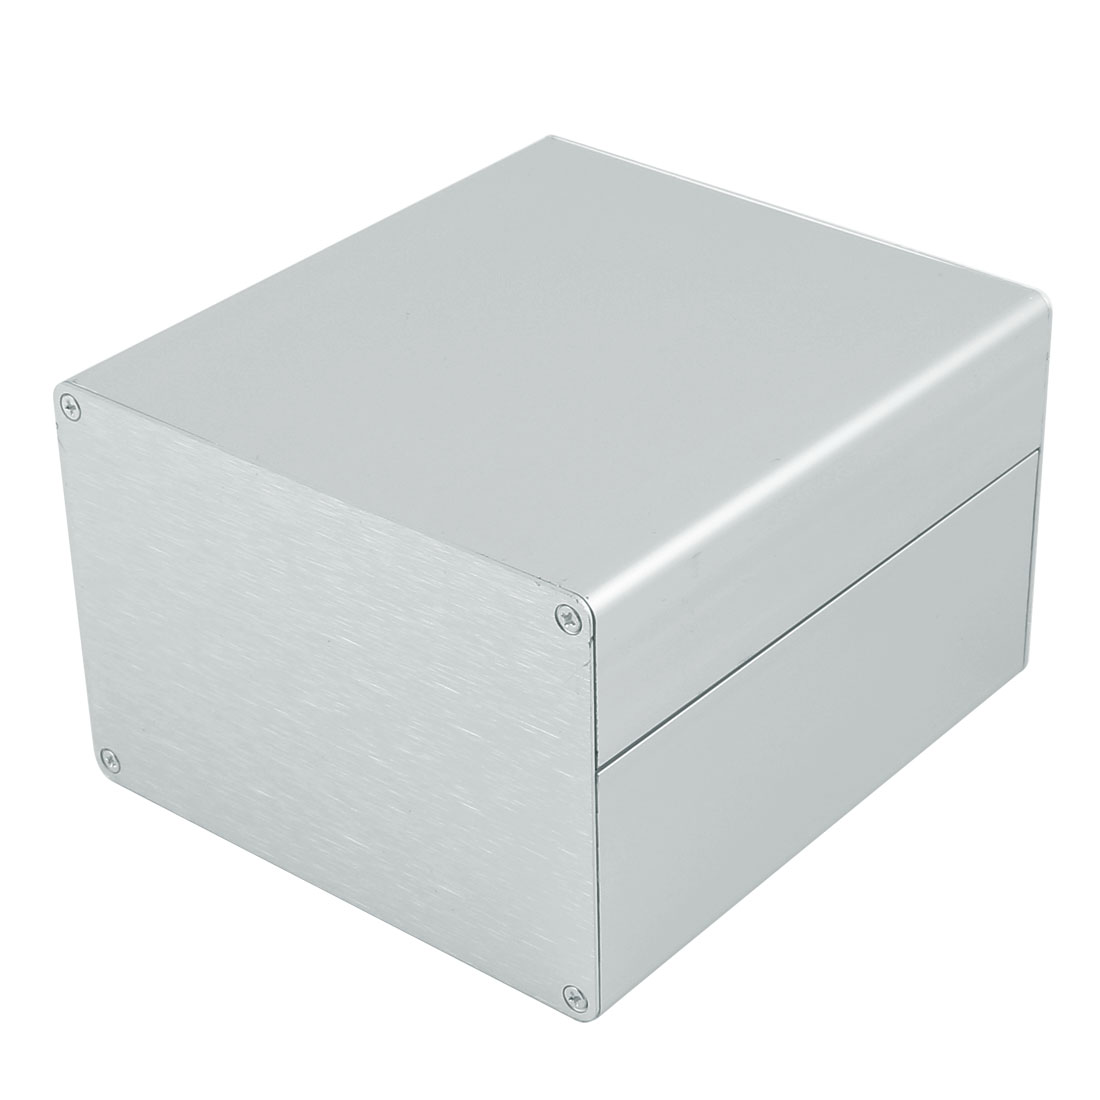 130 x 120 x 83mm Multi-purpose Extruded Aluminum Enclosure Box Silver Tone